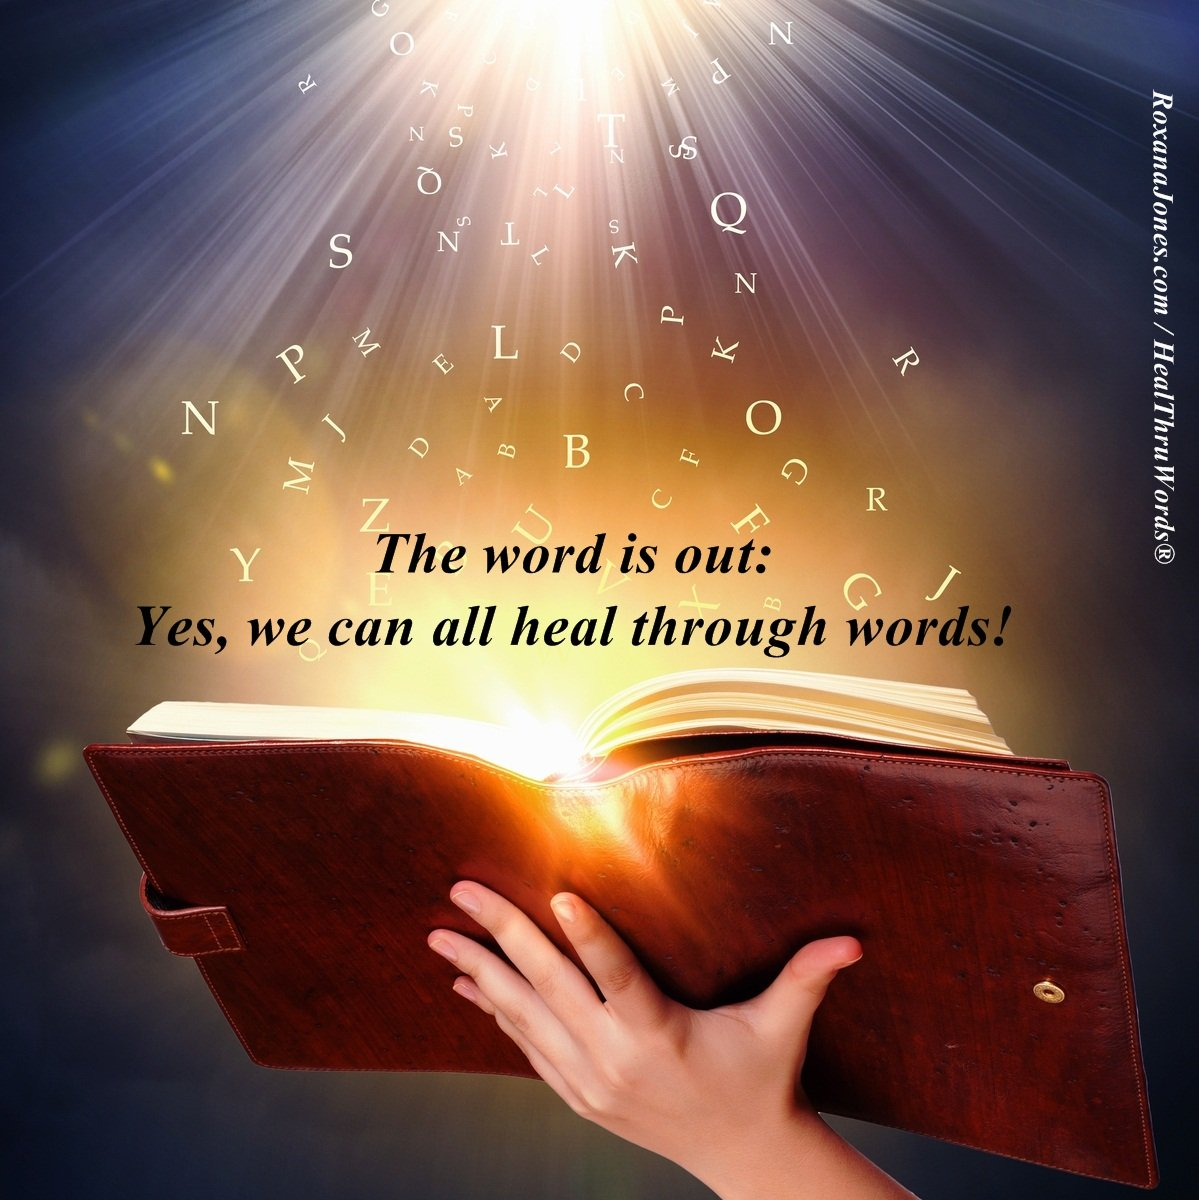 Inspirational Image: Healing Through Words